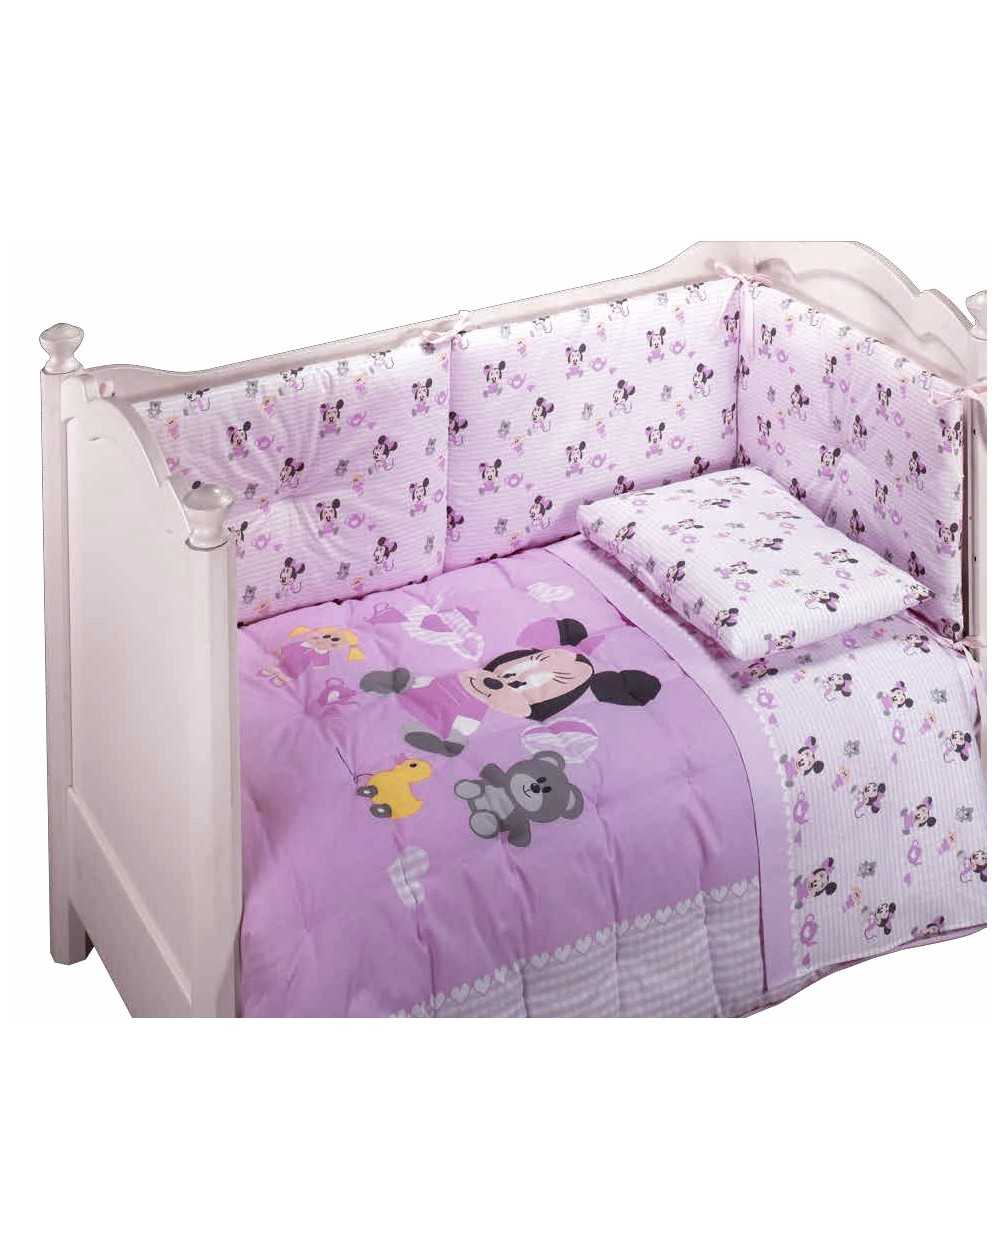 Trapunta Hello Kitty Gabel.Comforter Trapunta E Paracolpi Per Lettino Minnie Baby Disney By Caleffi Disponibile In Tre Colori Color Lilla